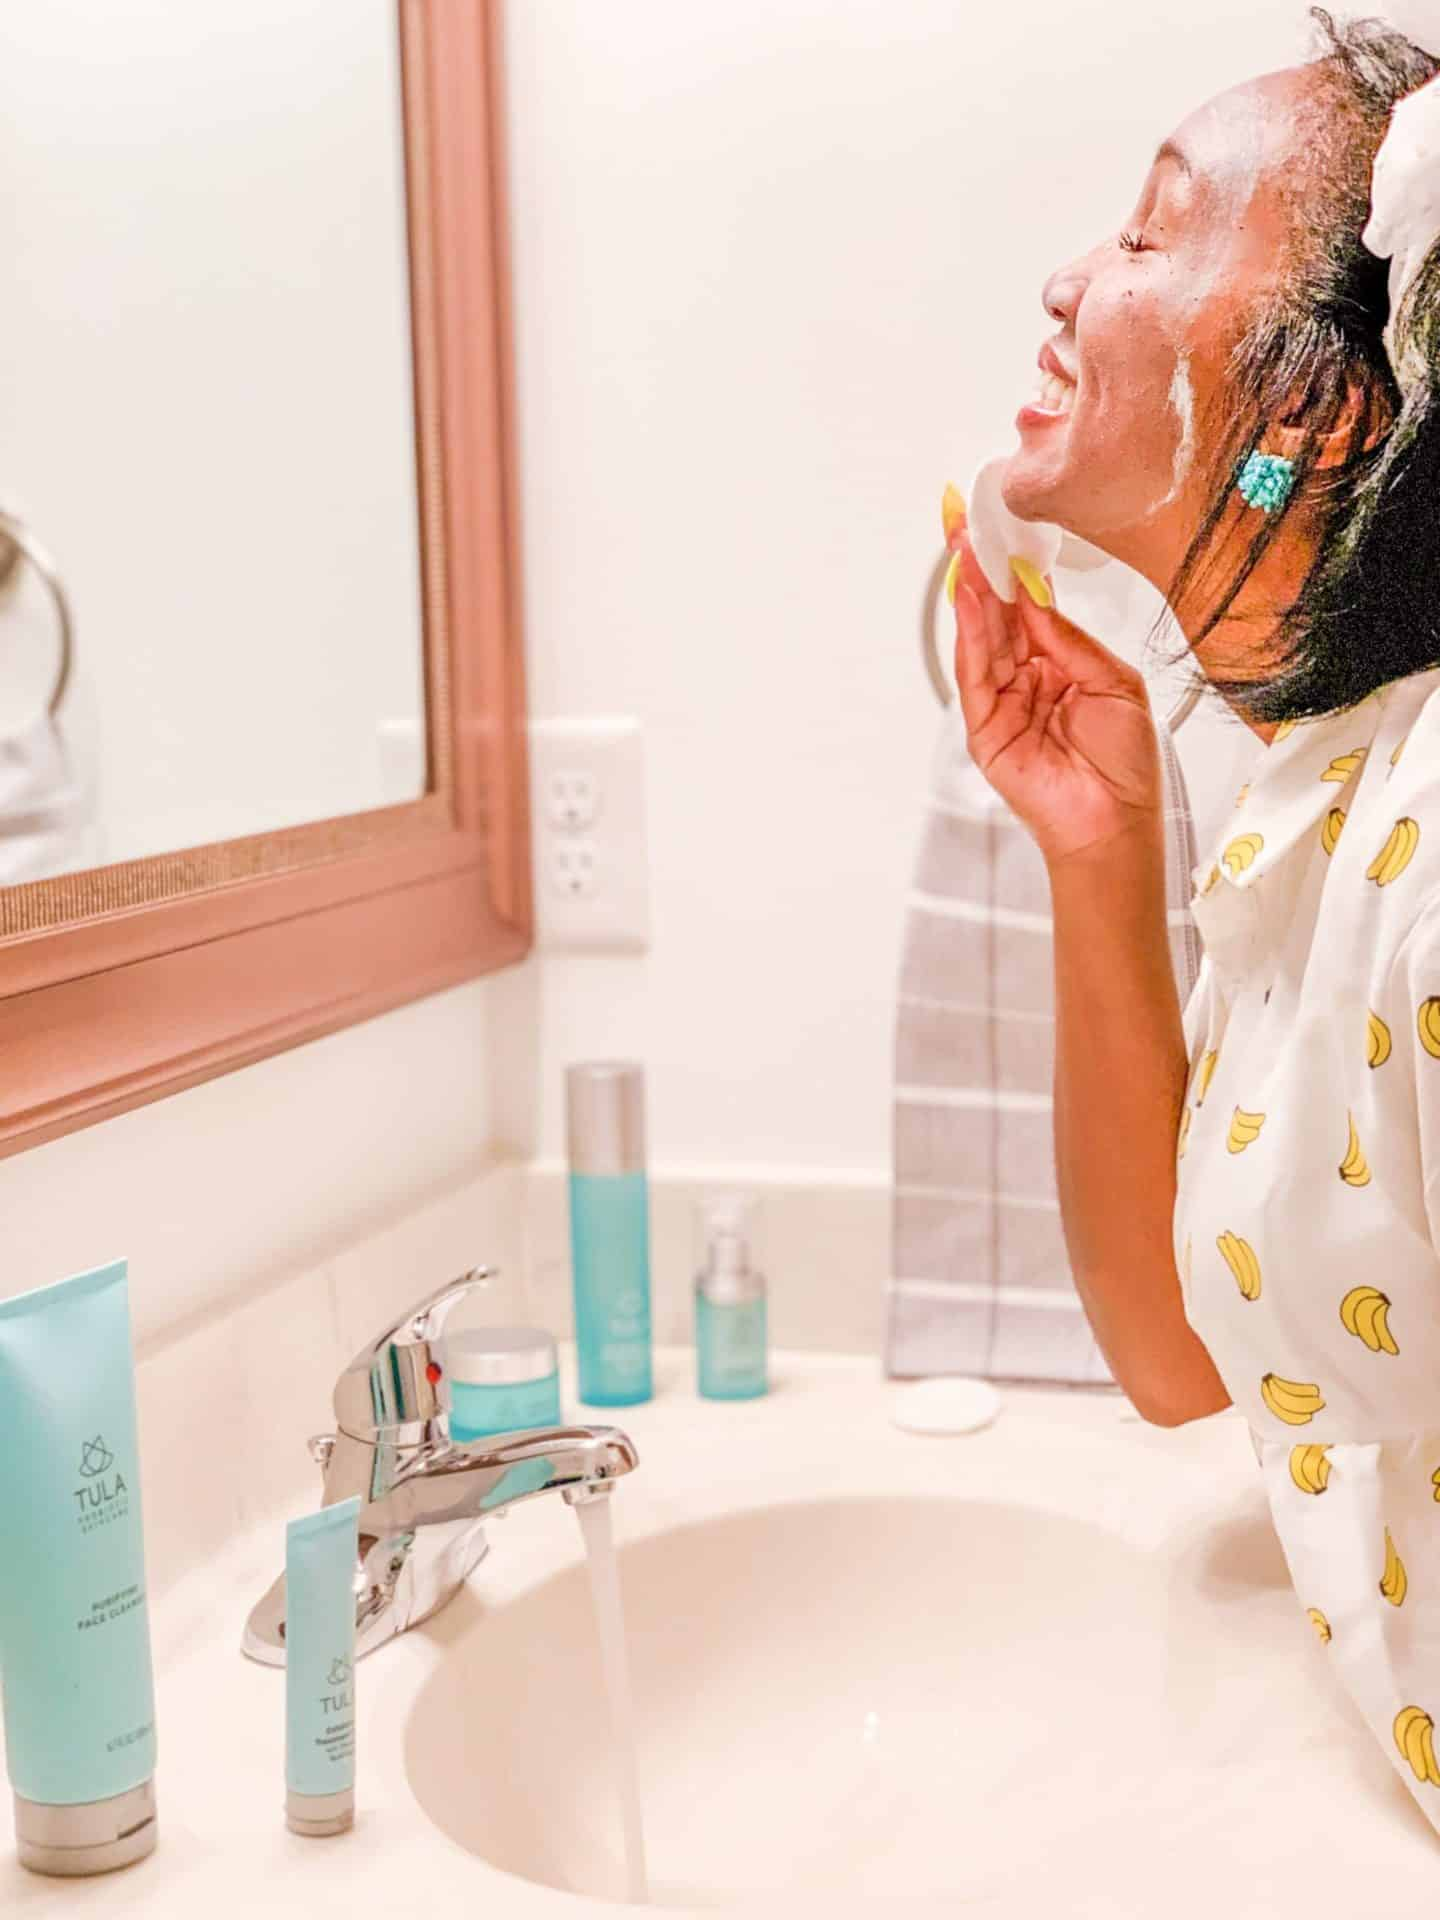 Shaunda Necole | Fresh Spring Routines With TULA Skincare- Wash Day & Night with Purifying Face Cleanser